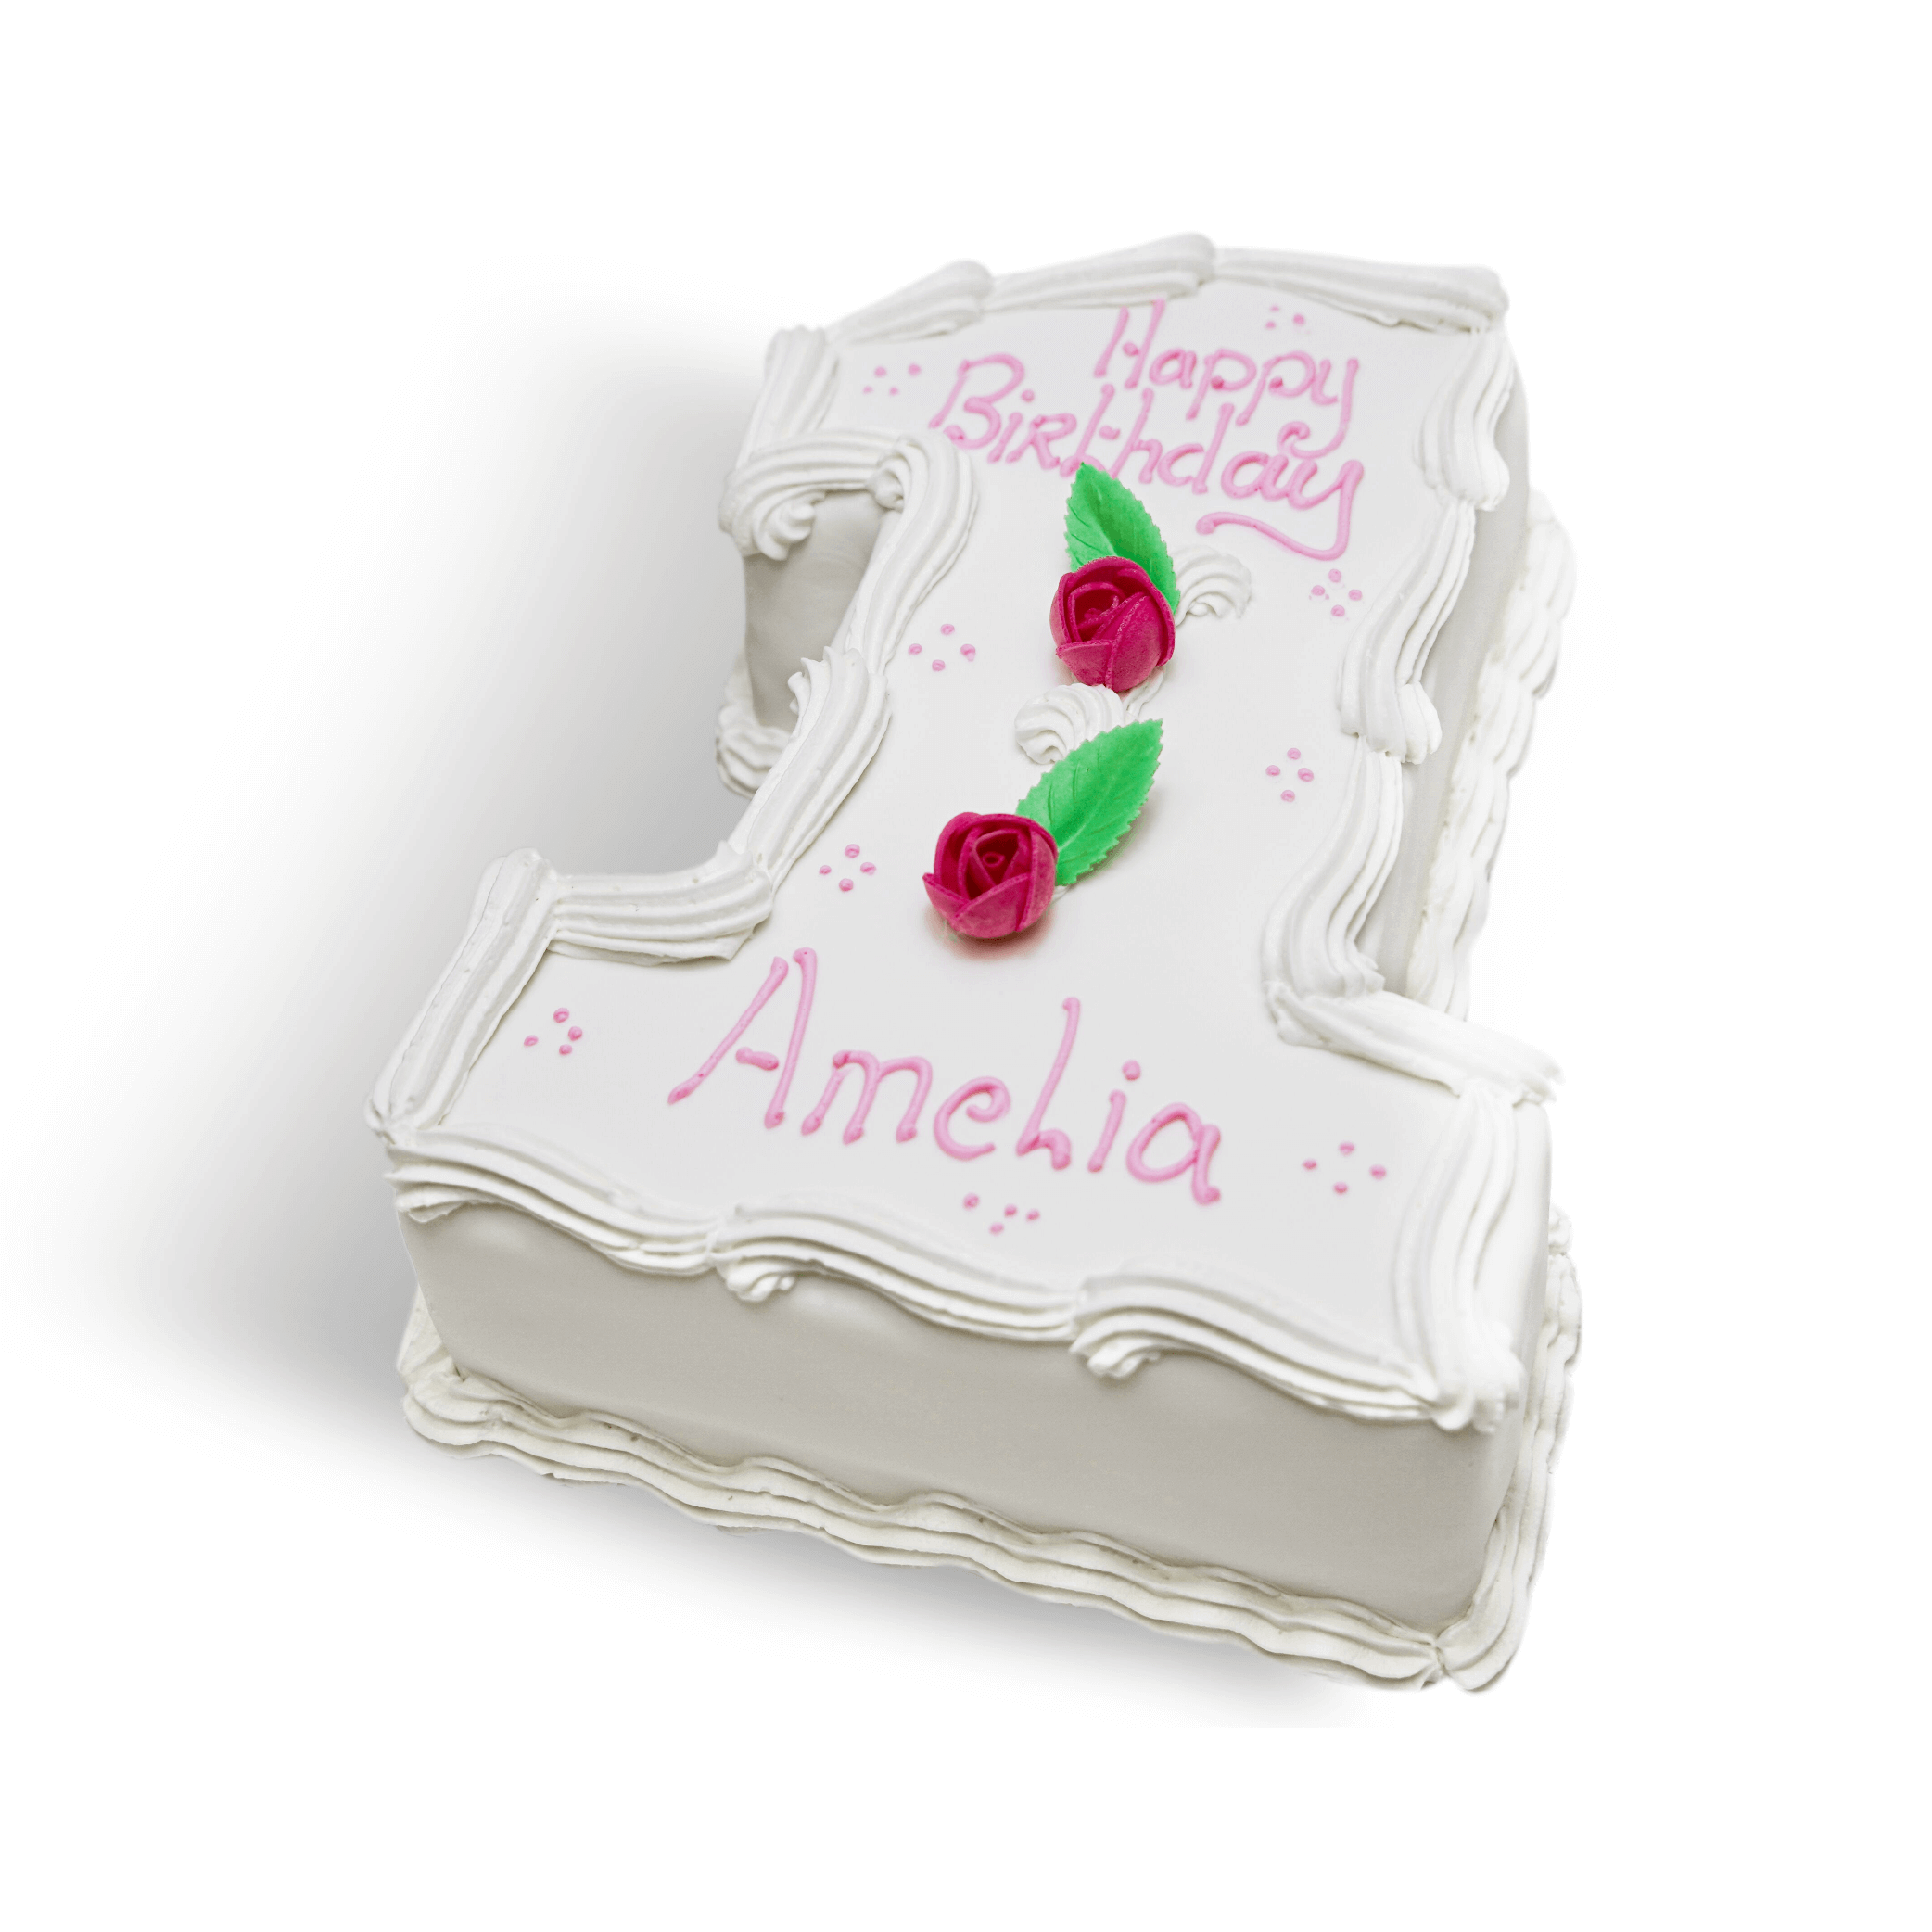 A white birthday cake with pink decorations in the shape of the number 1